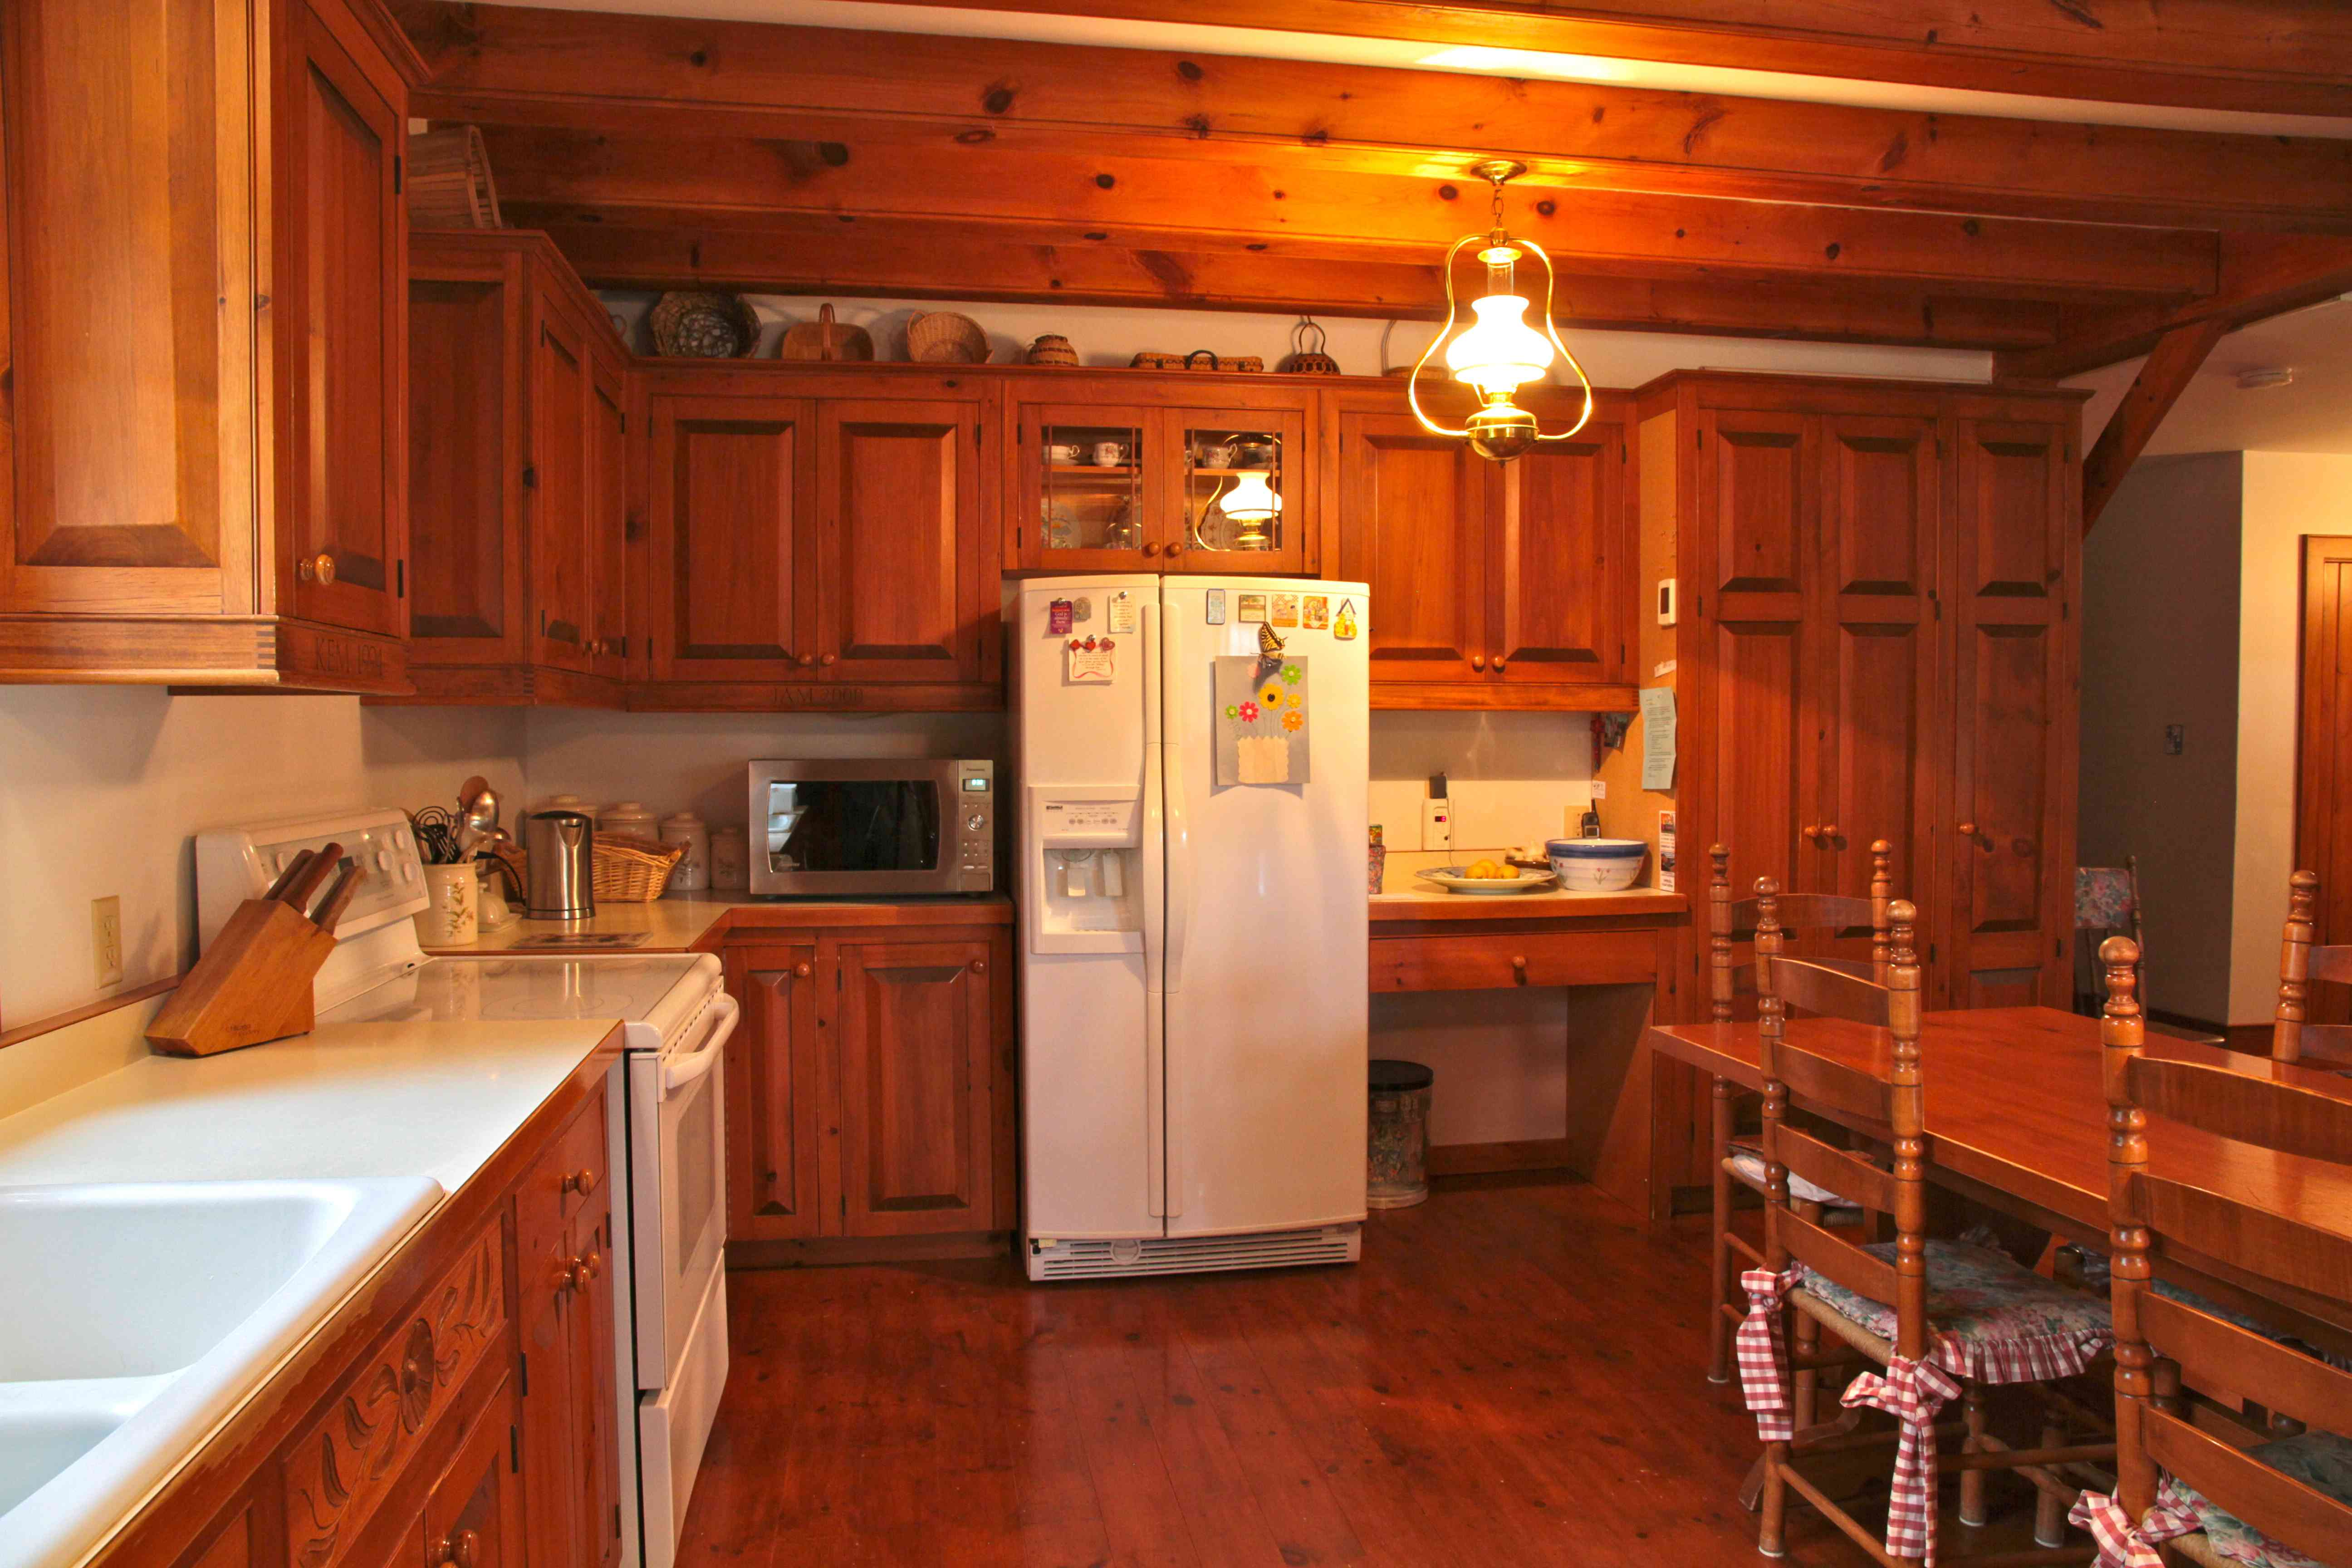 Building Kitchen Cabinets Video Classic Kitchen Cabinets Learn How To Build Your Own